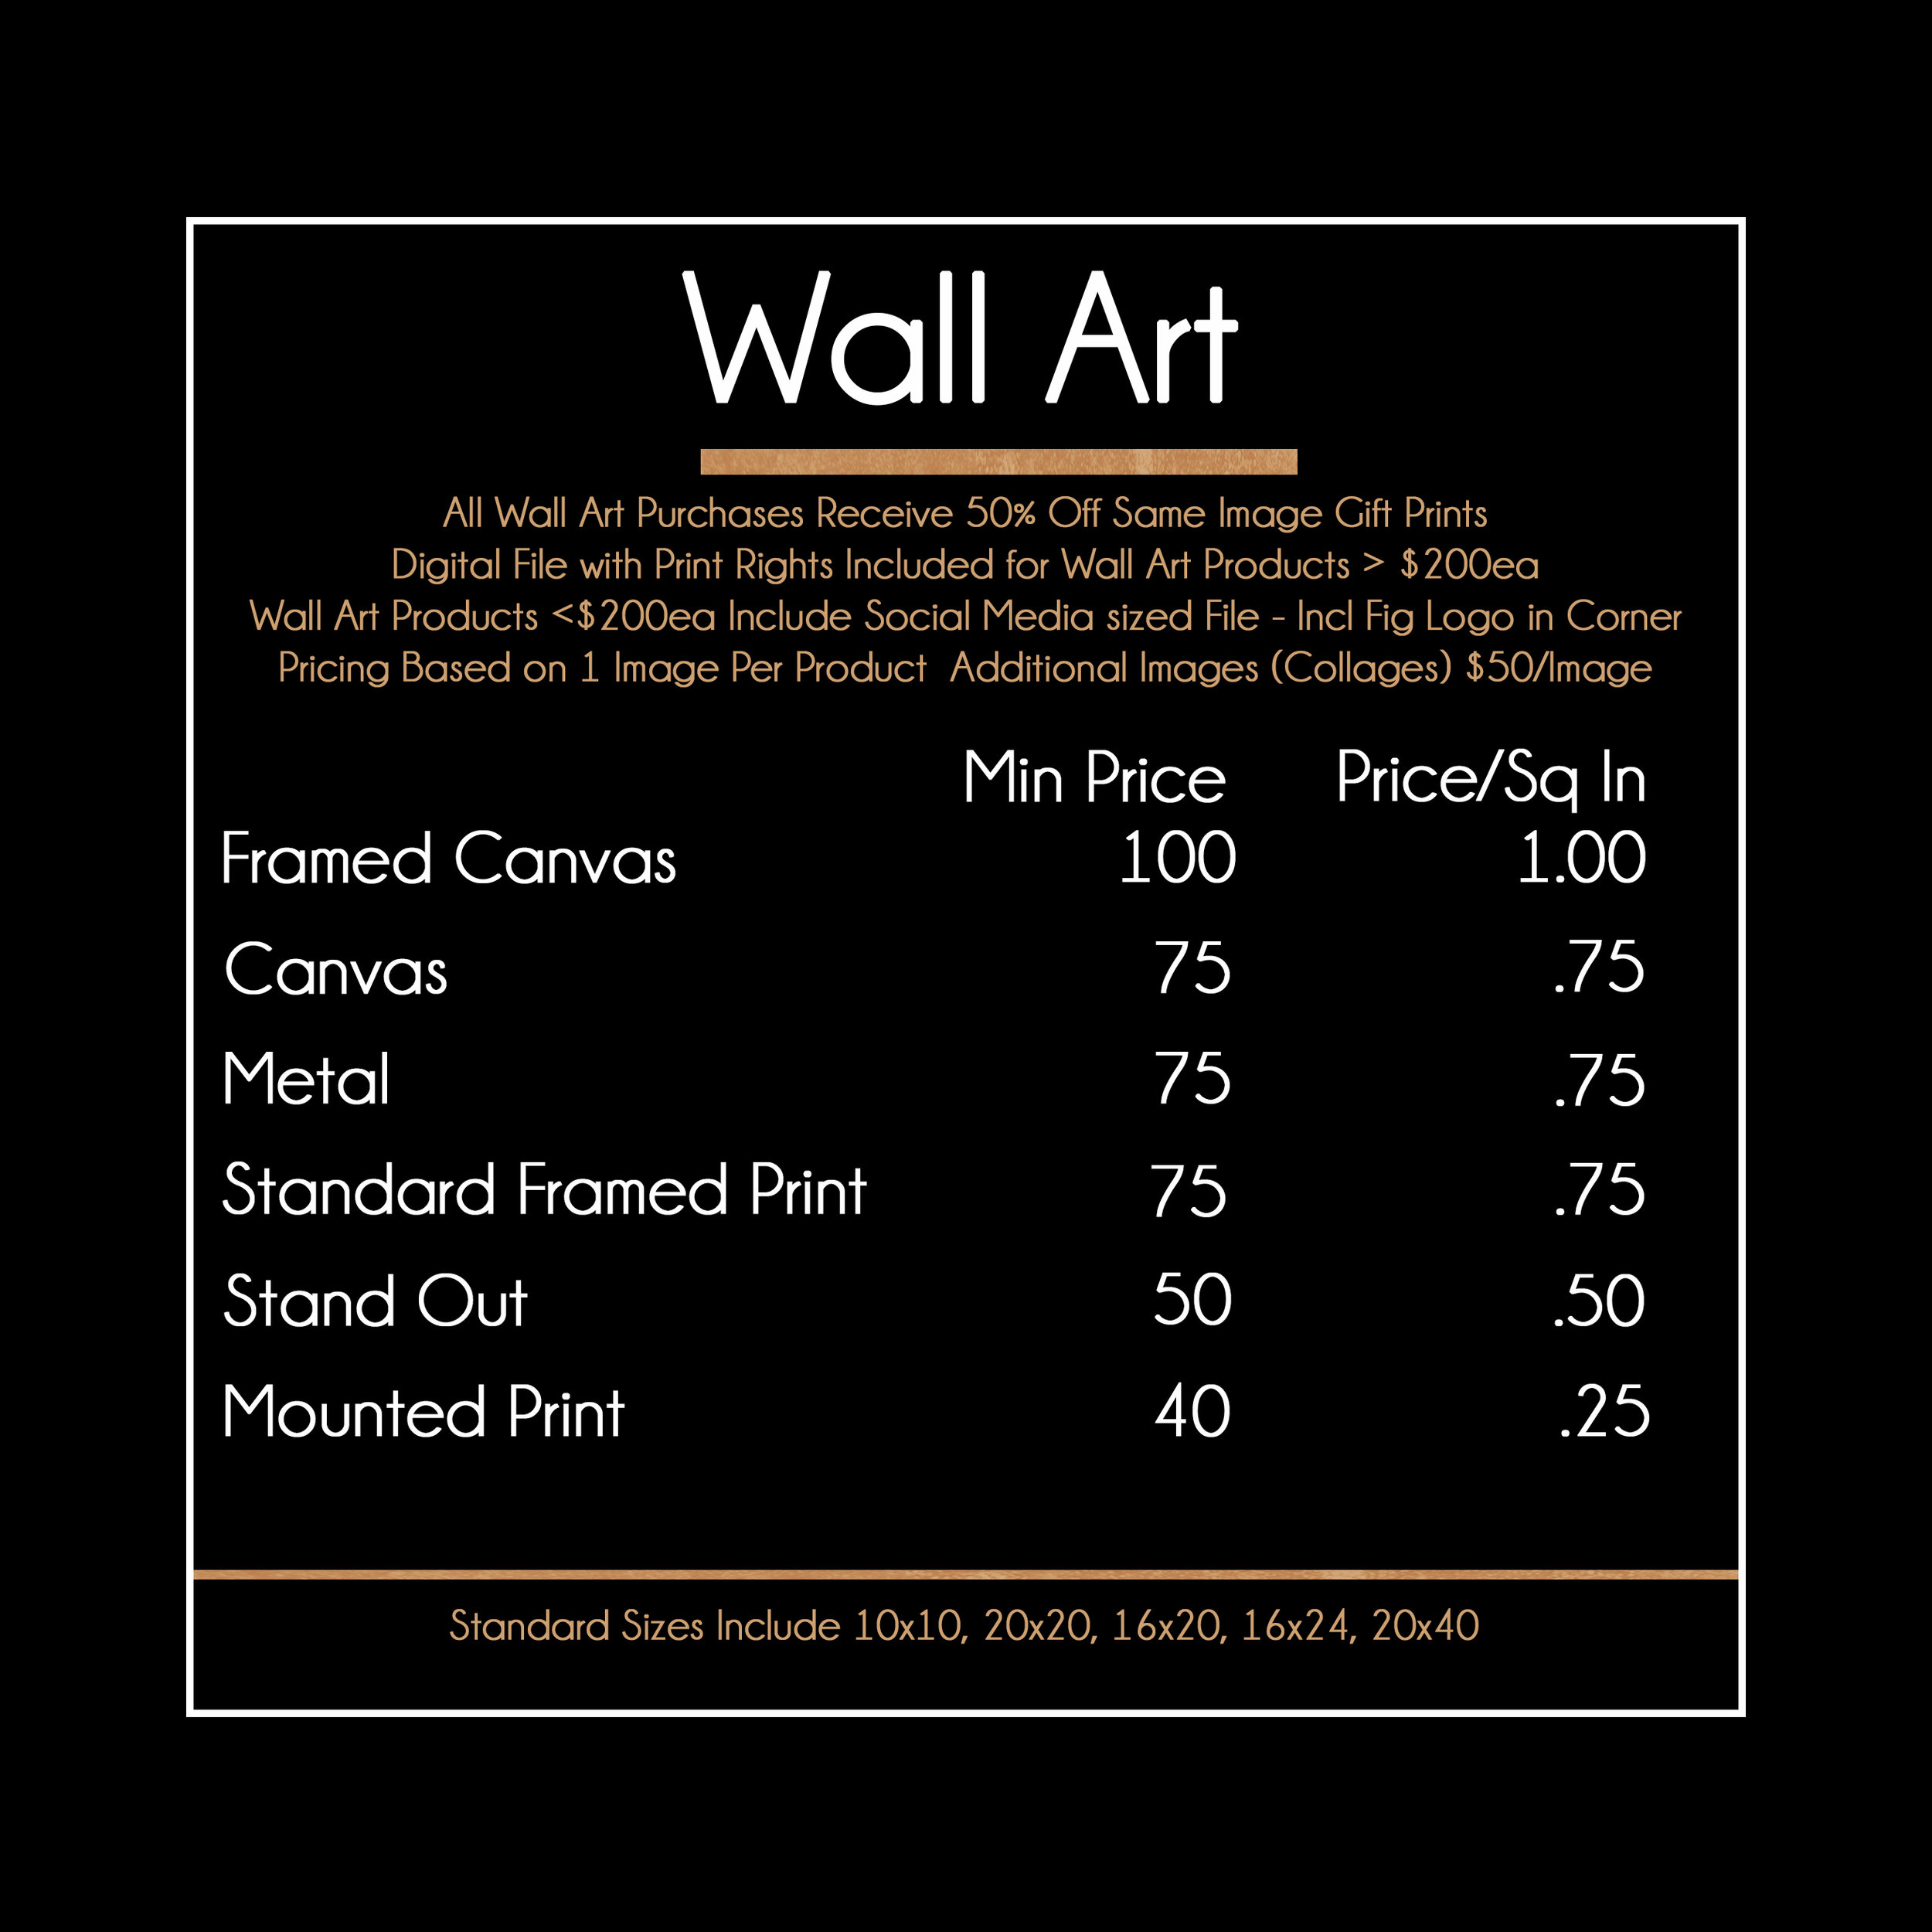 2018 Pricing and Policy Wall Art.jpg